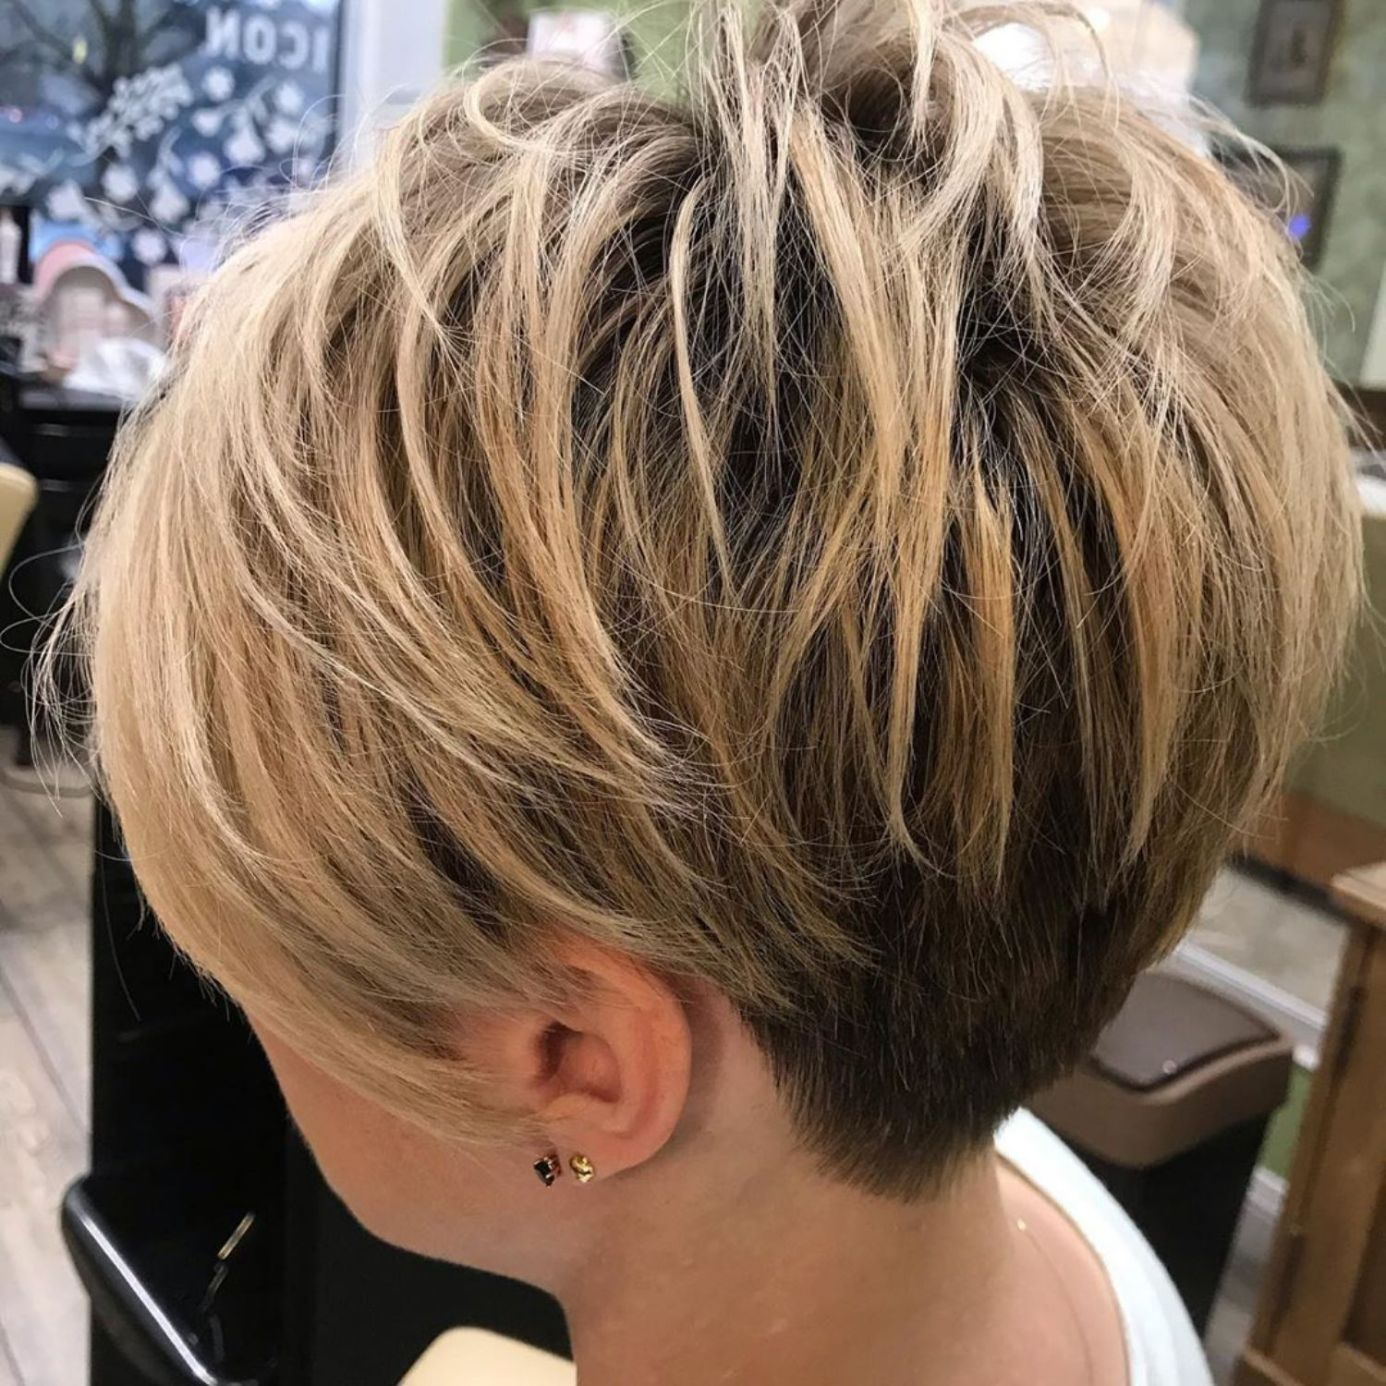 Short Thin Hairstyles Pattern for Women